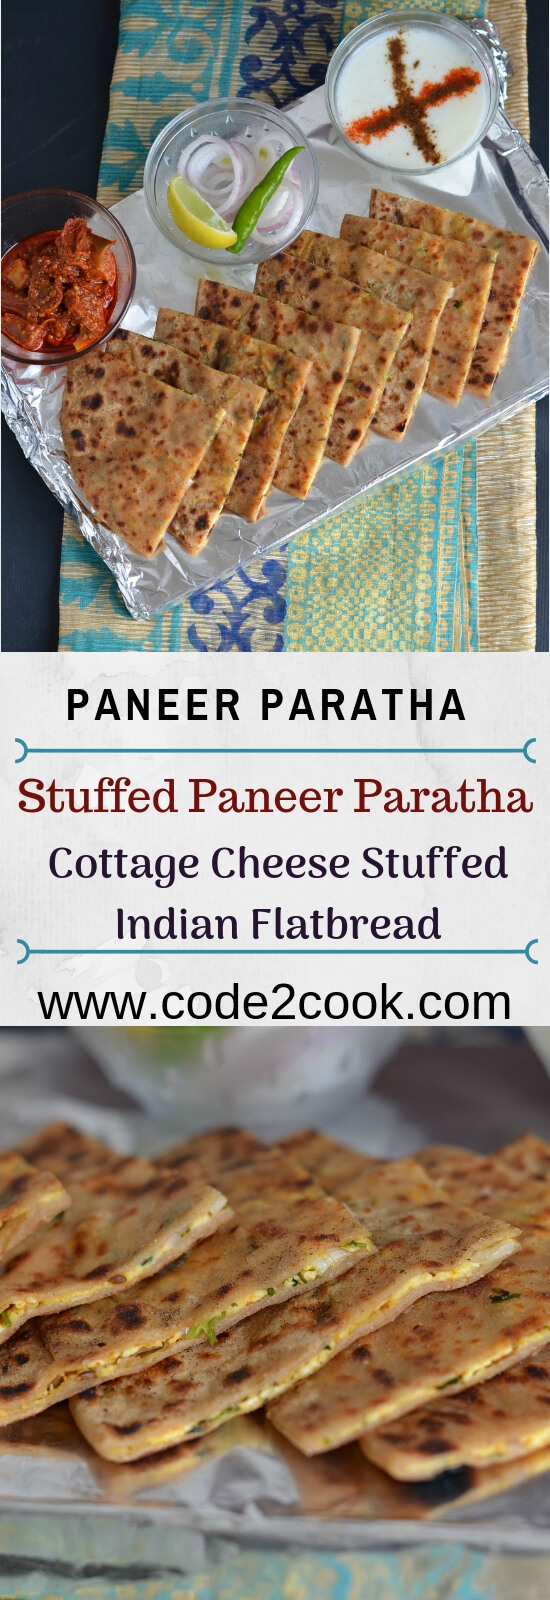 Paneer Paratha is very famous paratha and often served with curd or pickle mostly in every restaurant in India. This is an Indian flatbread which is stuffed with grated paneer or cottage cheese stuffing and seasoned with few spices. A great tiffin box recipe and can be eaten in any meal.